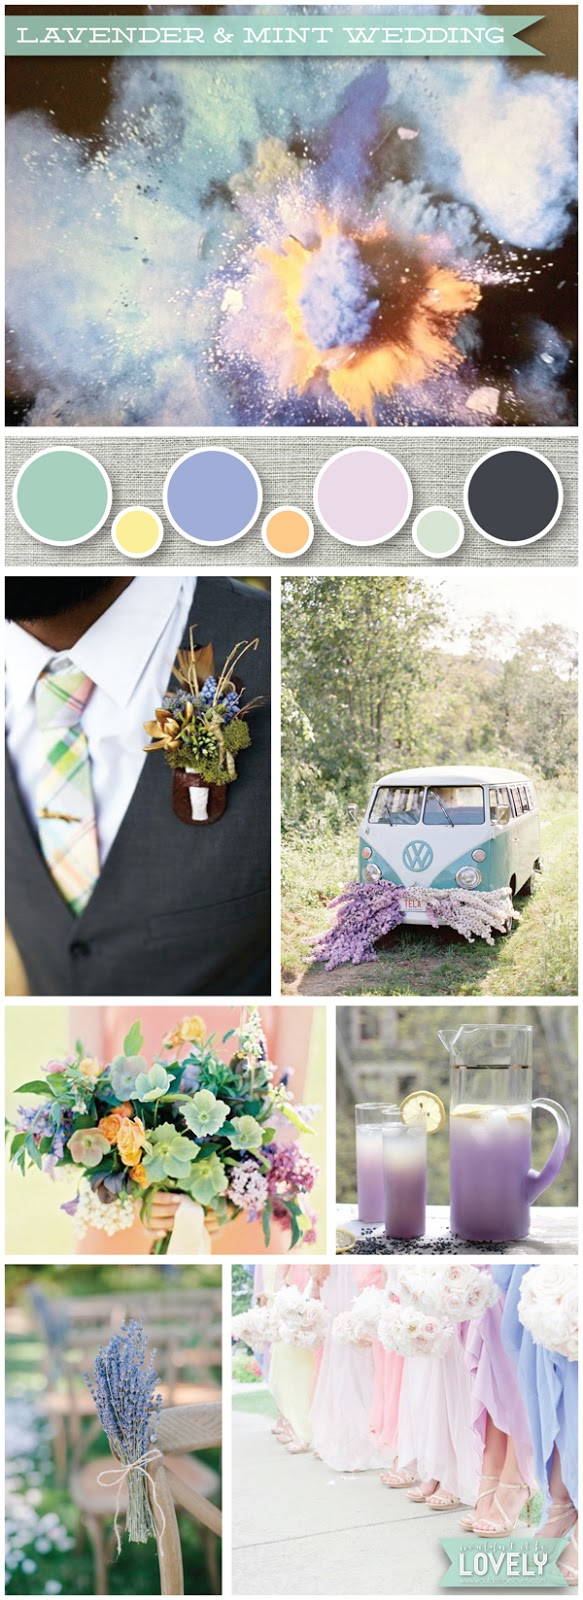 lavender+and+mint+color+pallet.jpg